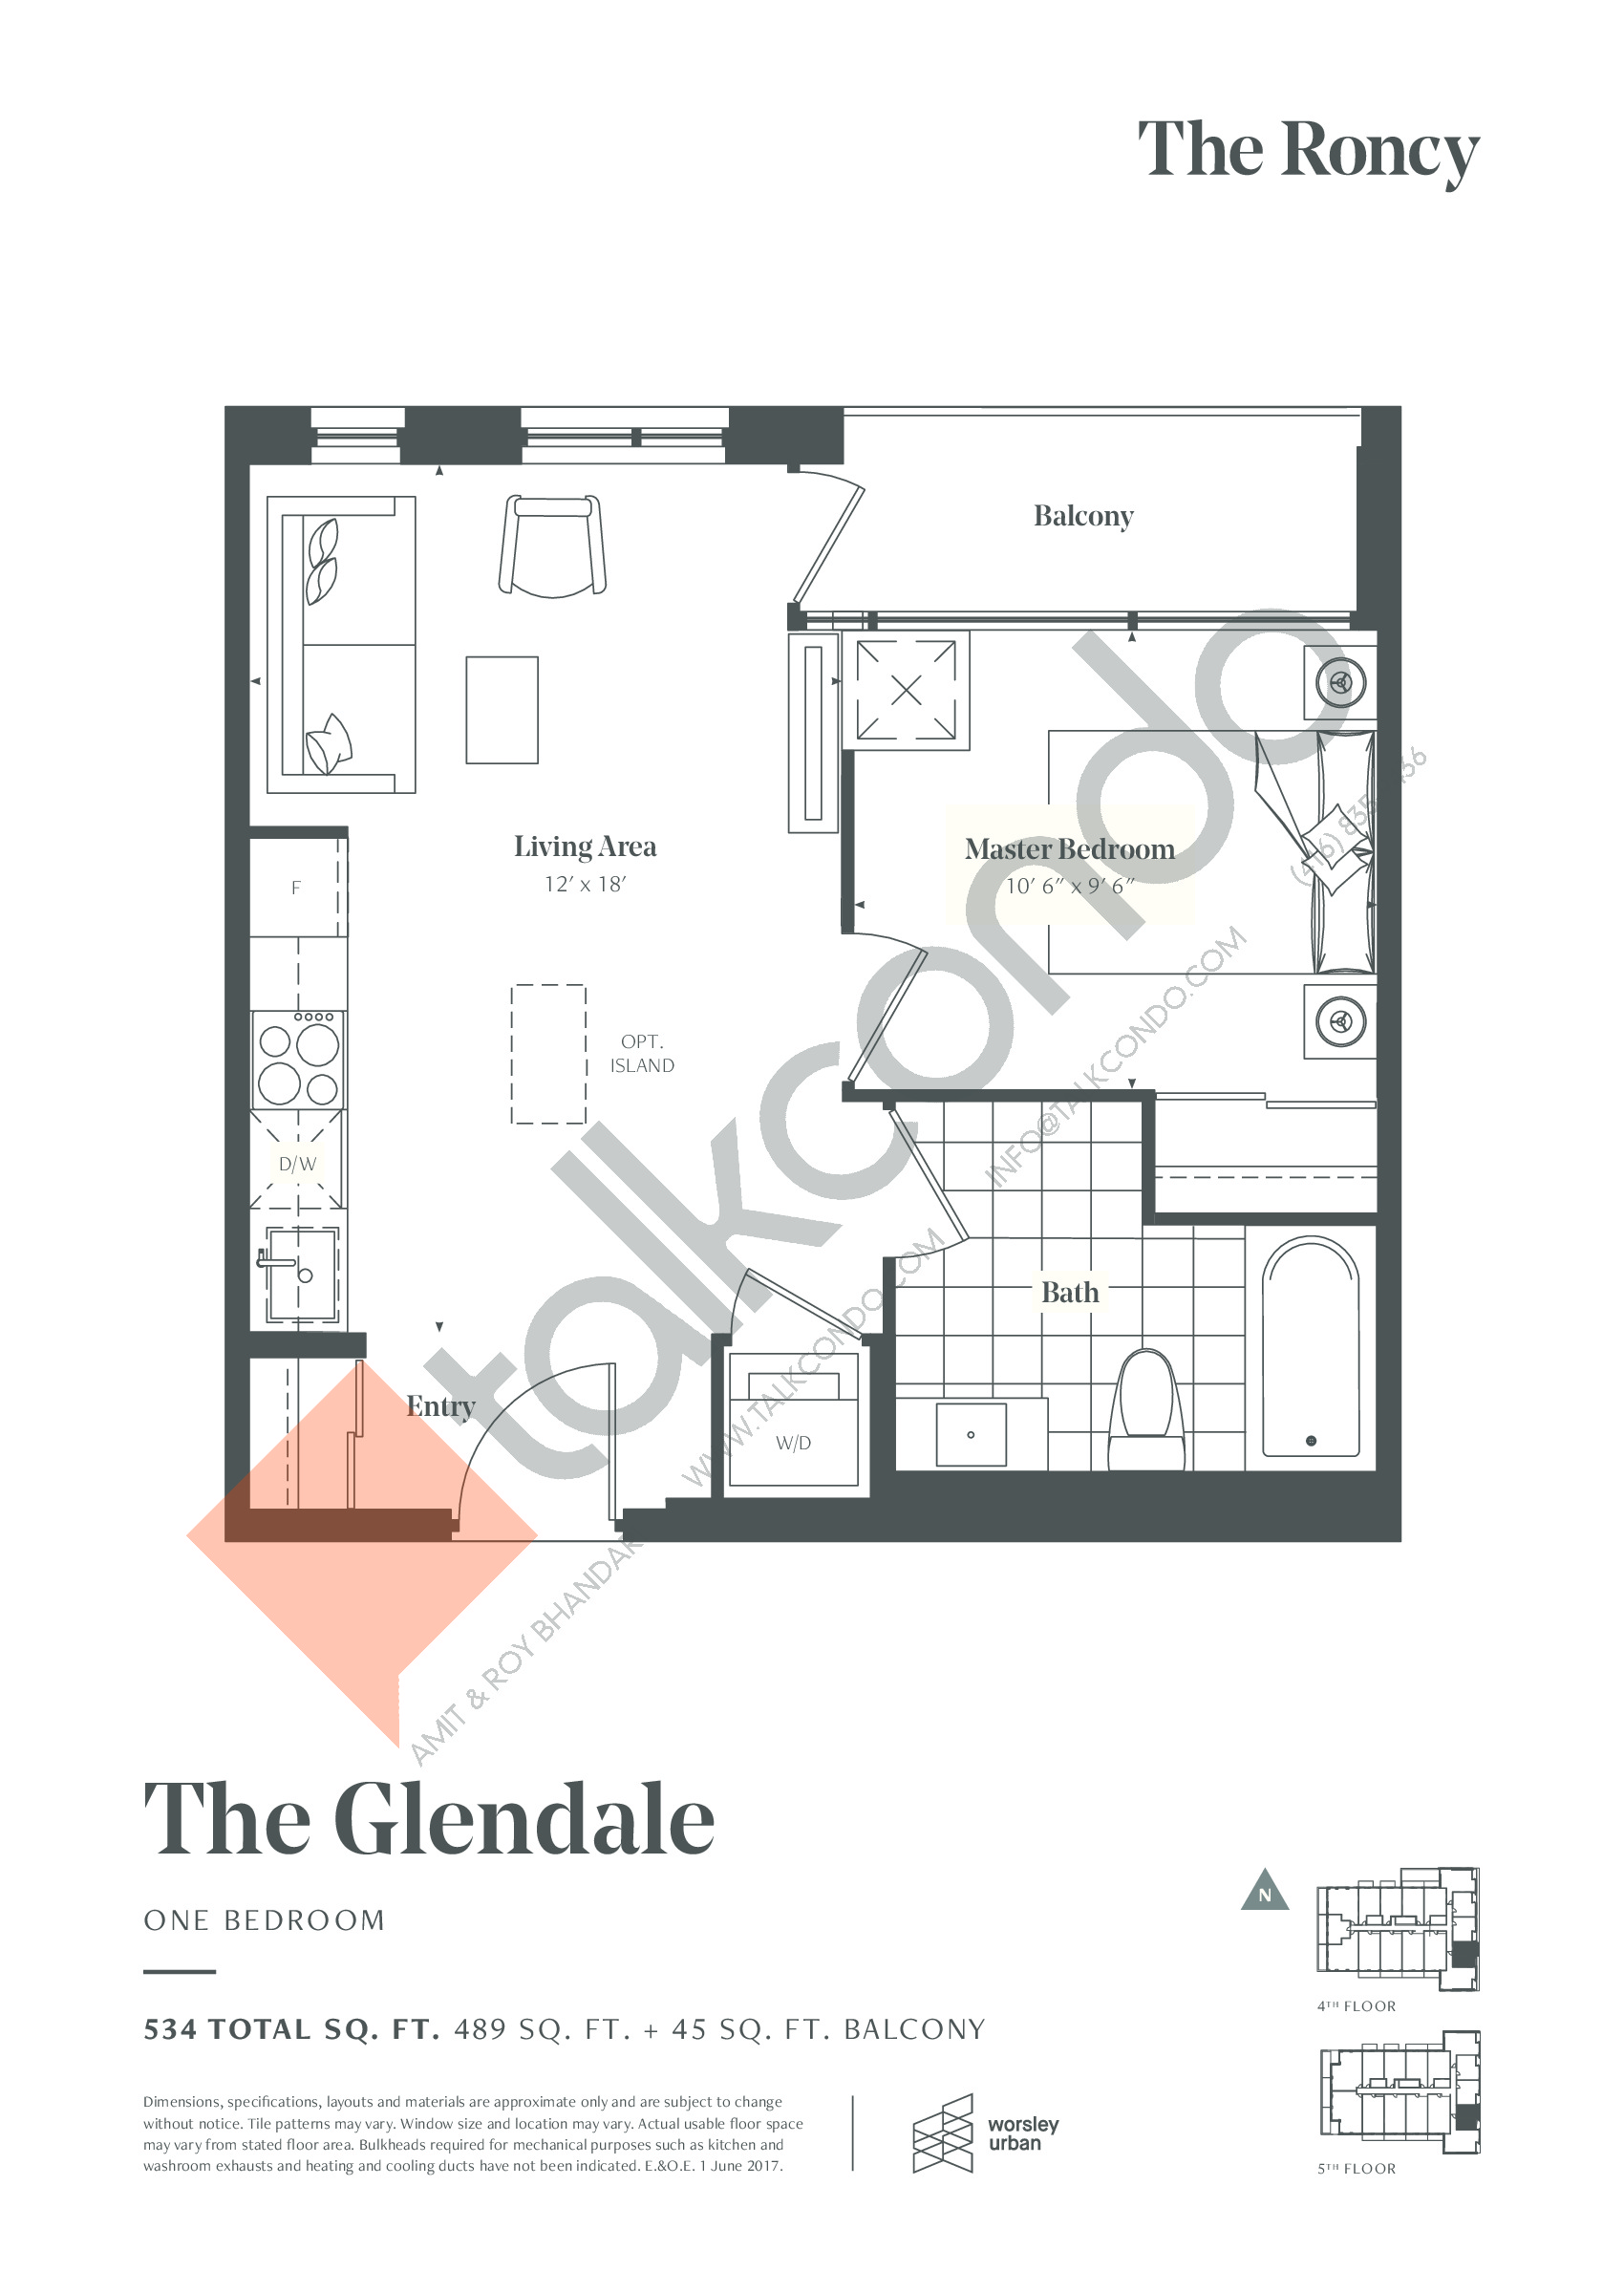 The Glendale Floor Plan at The Roncy Condos - 489 sq.ft